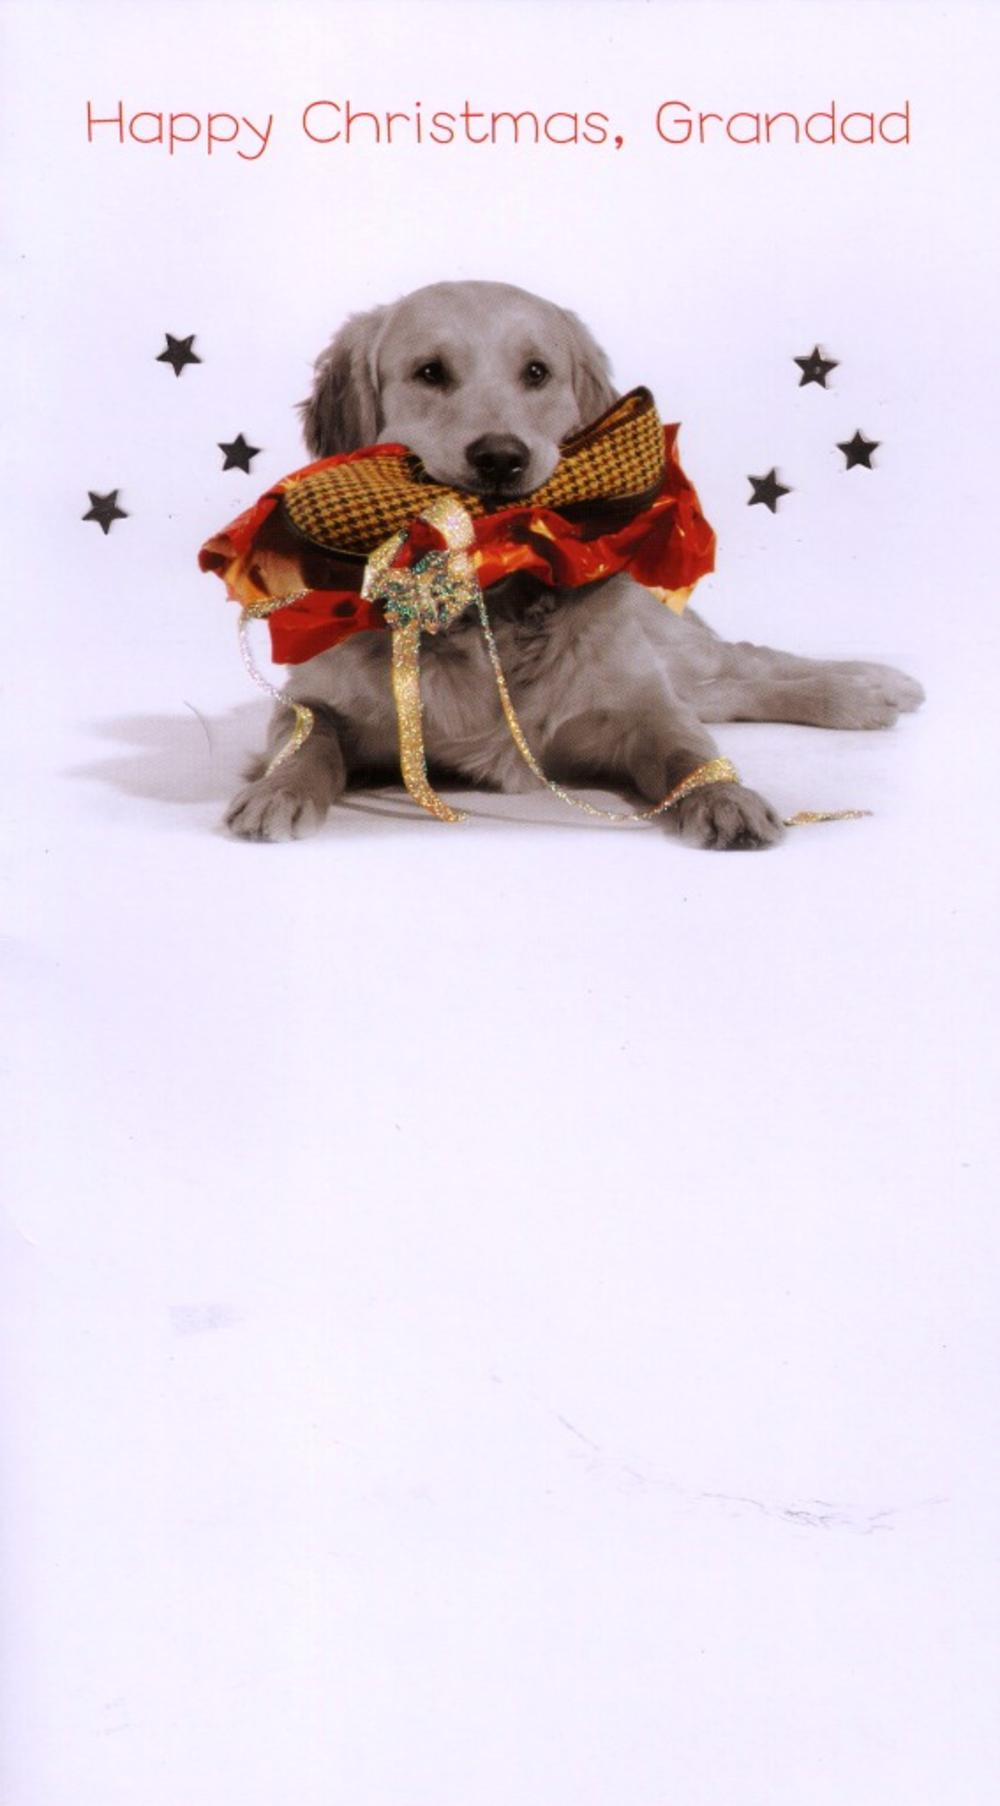 Grandad Luxury 3D Glitter Xmas Happy Christmas Cards Puppy Photo ...